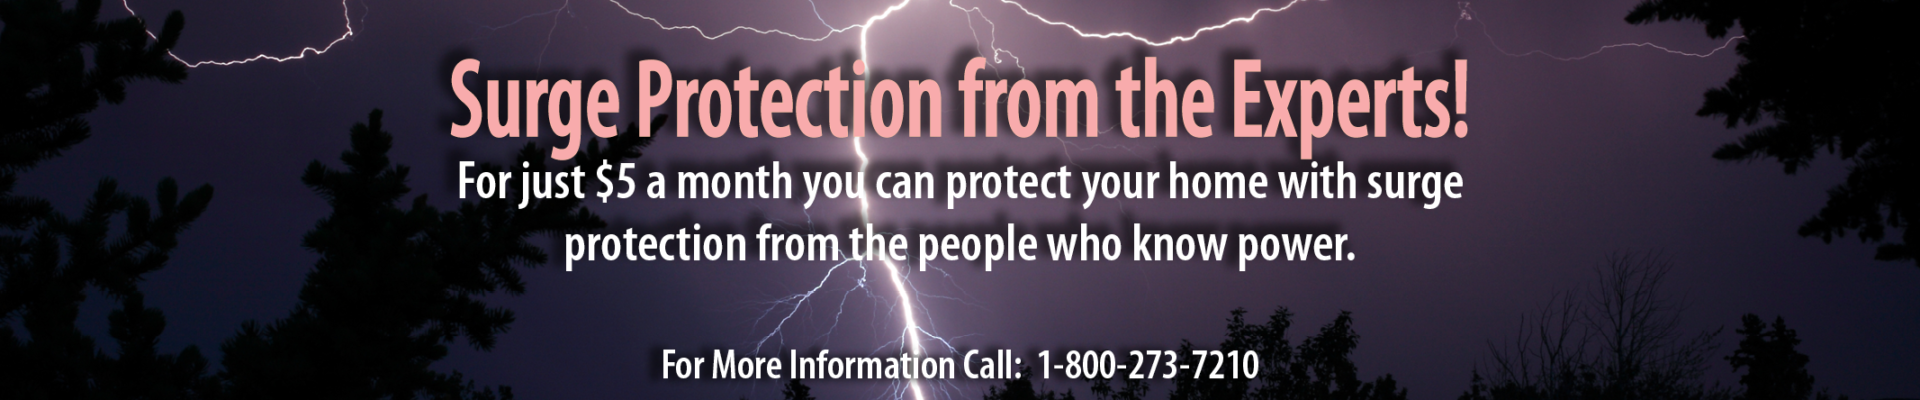 Surge protection from the experts